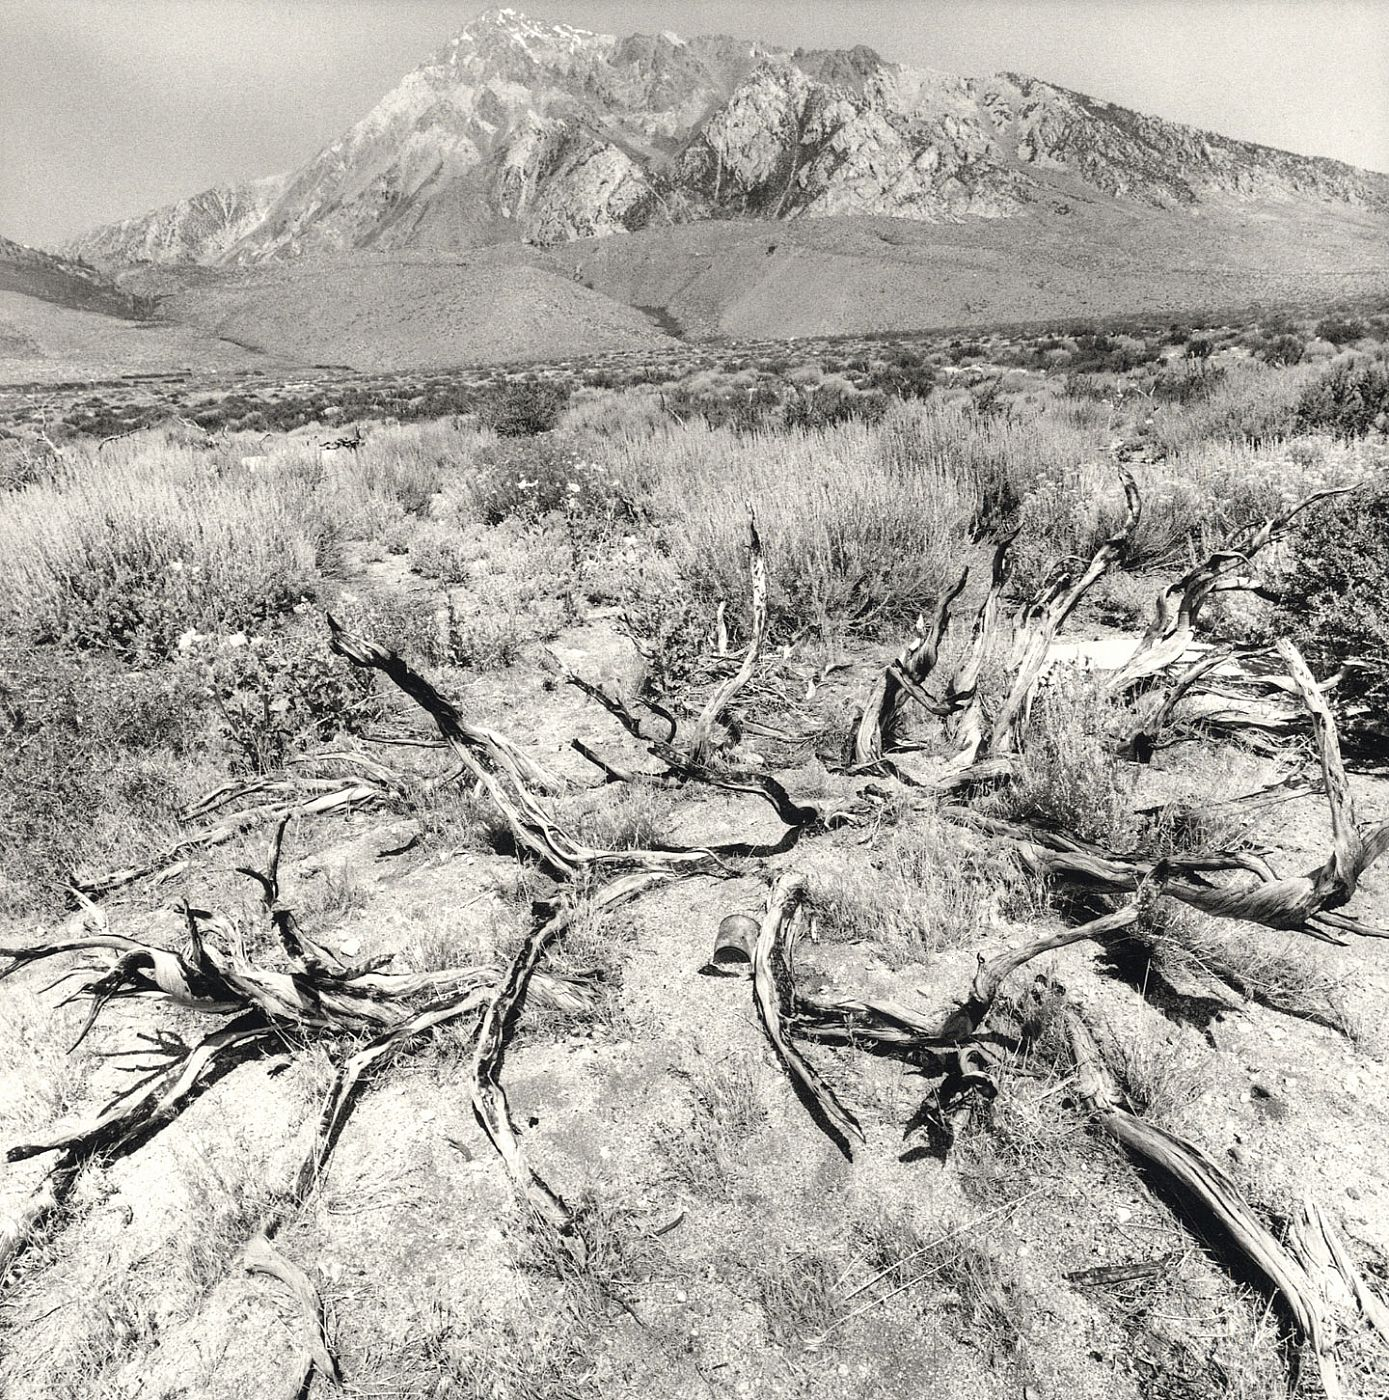 Lee Friedlander: Recent Western Landscape 2008-09 (Mary Boone Gallery), Limited Edition [SIGNED]